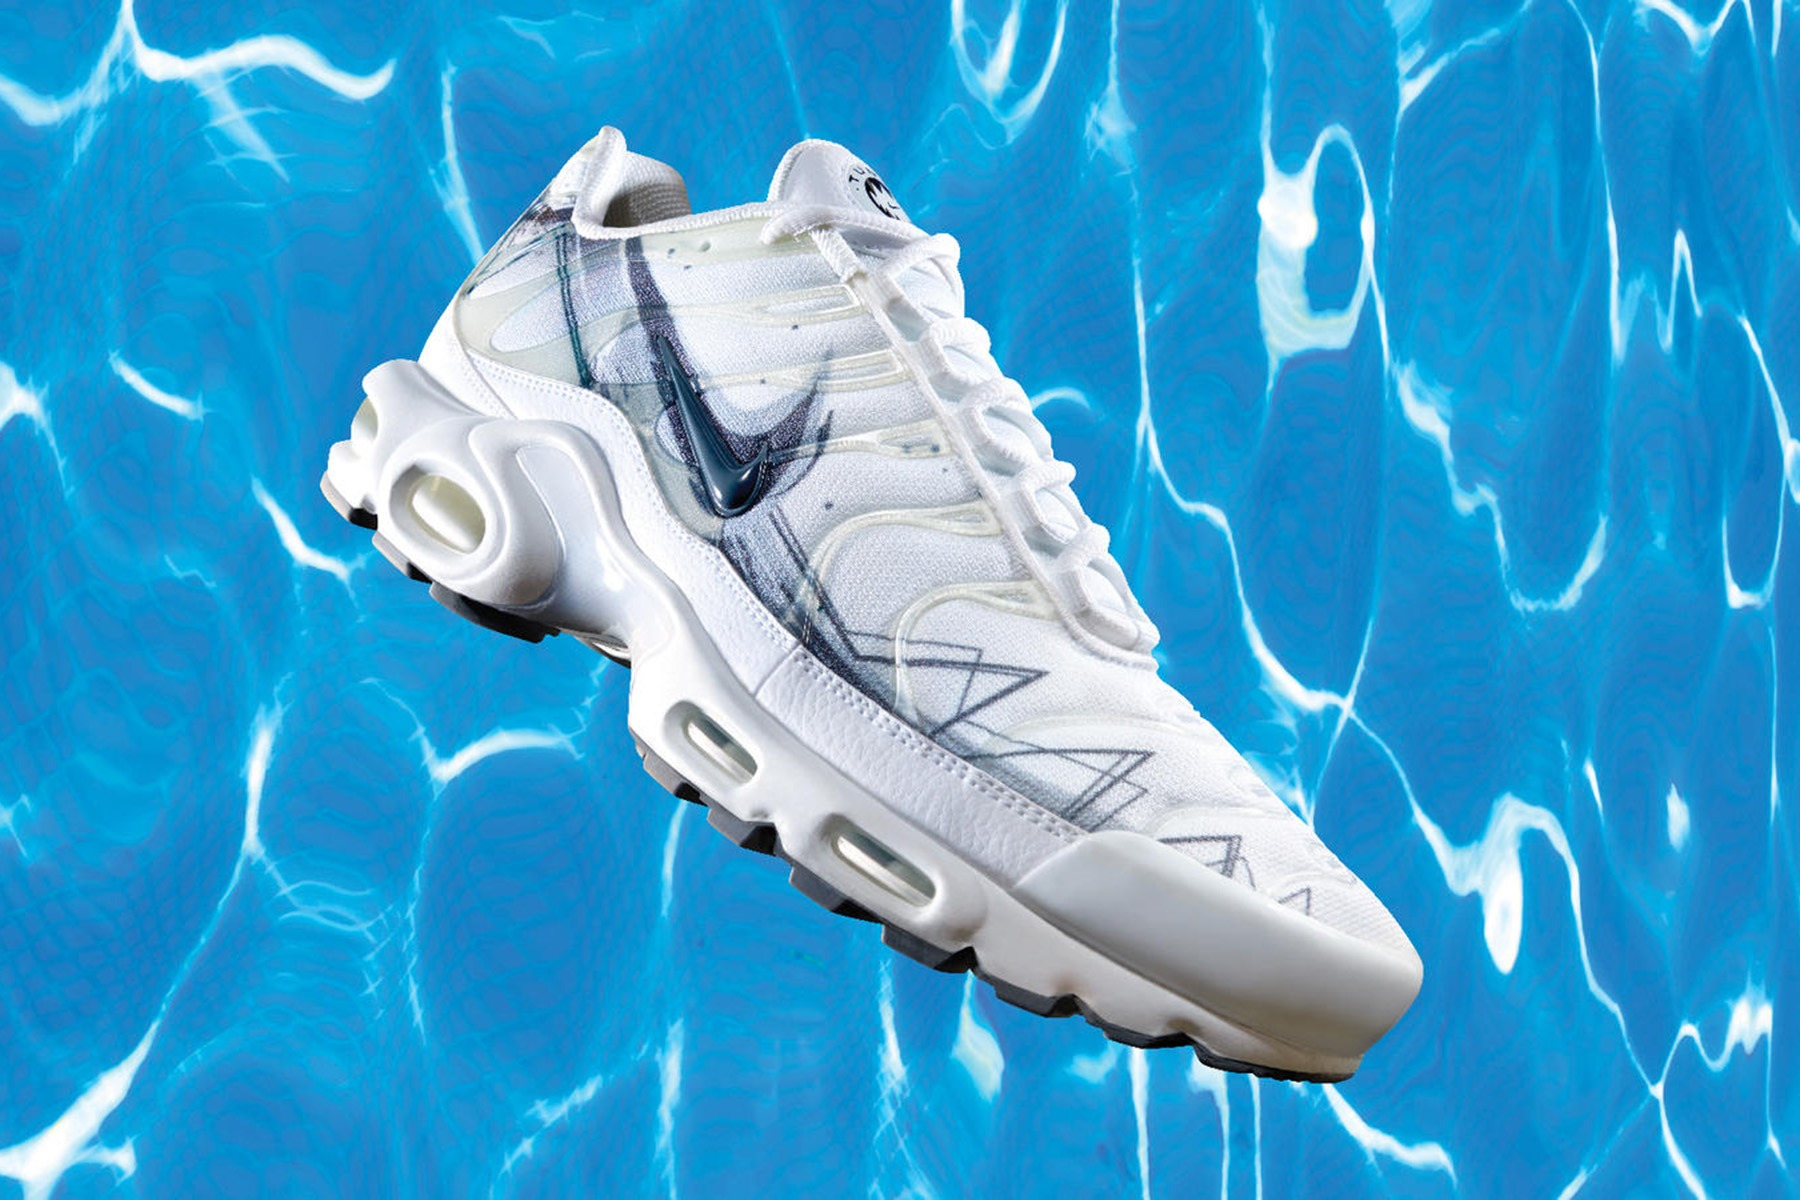 new product 9a037 20acd La Requin translates from French to English as Air Max Plus (and shark).  Nike is playing on the nickname to craft a couple of Air Max Plus colorways  for ...